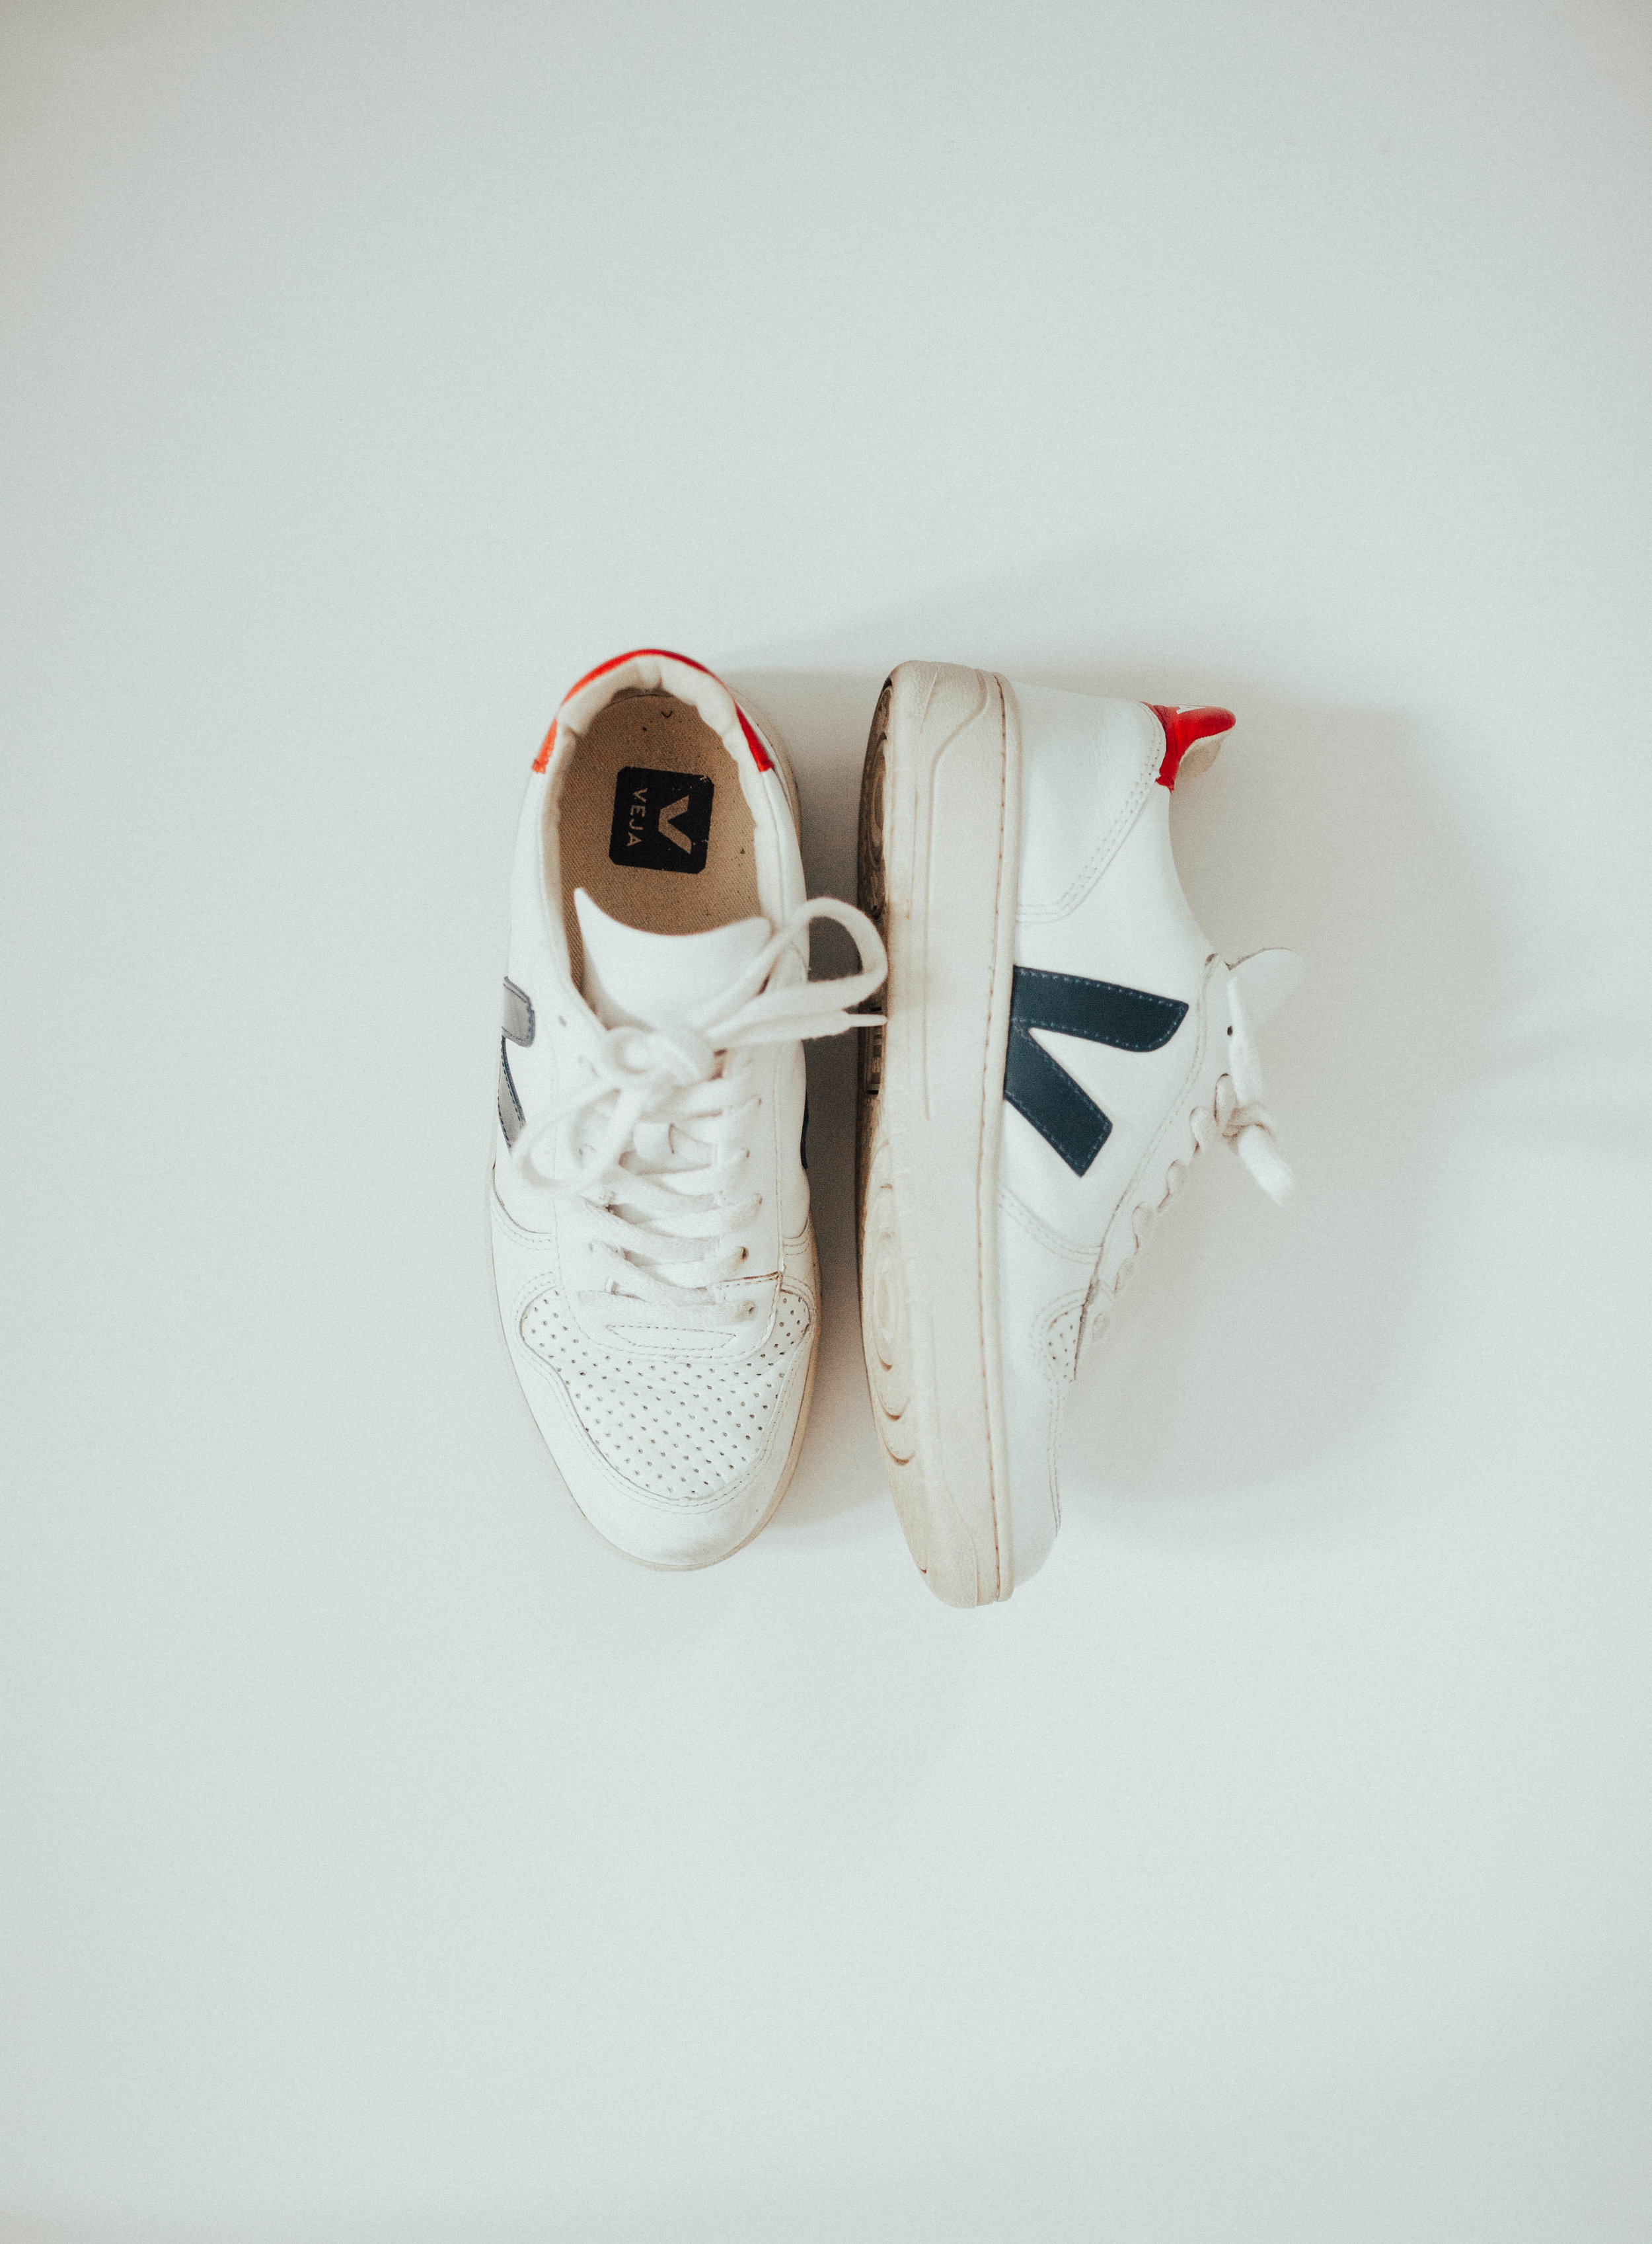 One of my first ethical style purchases of 2017 - the Veja V-10 Sneakers